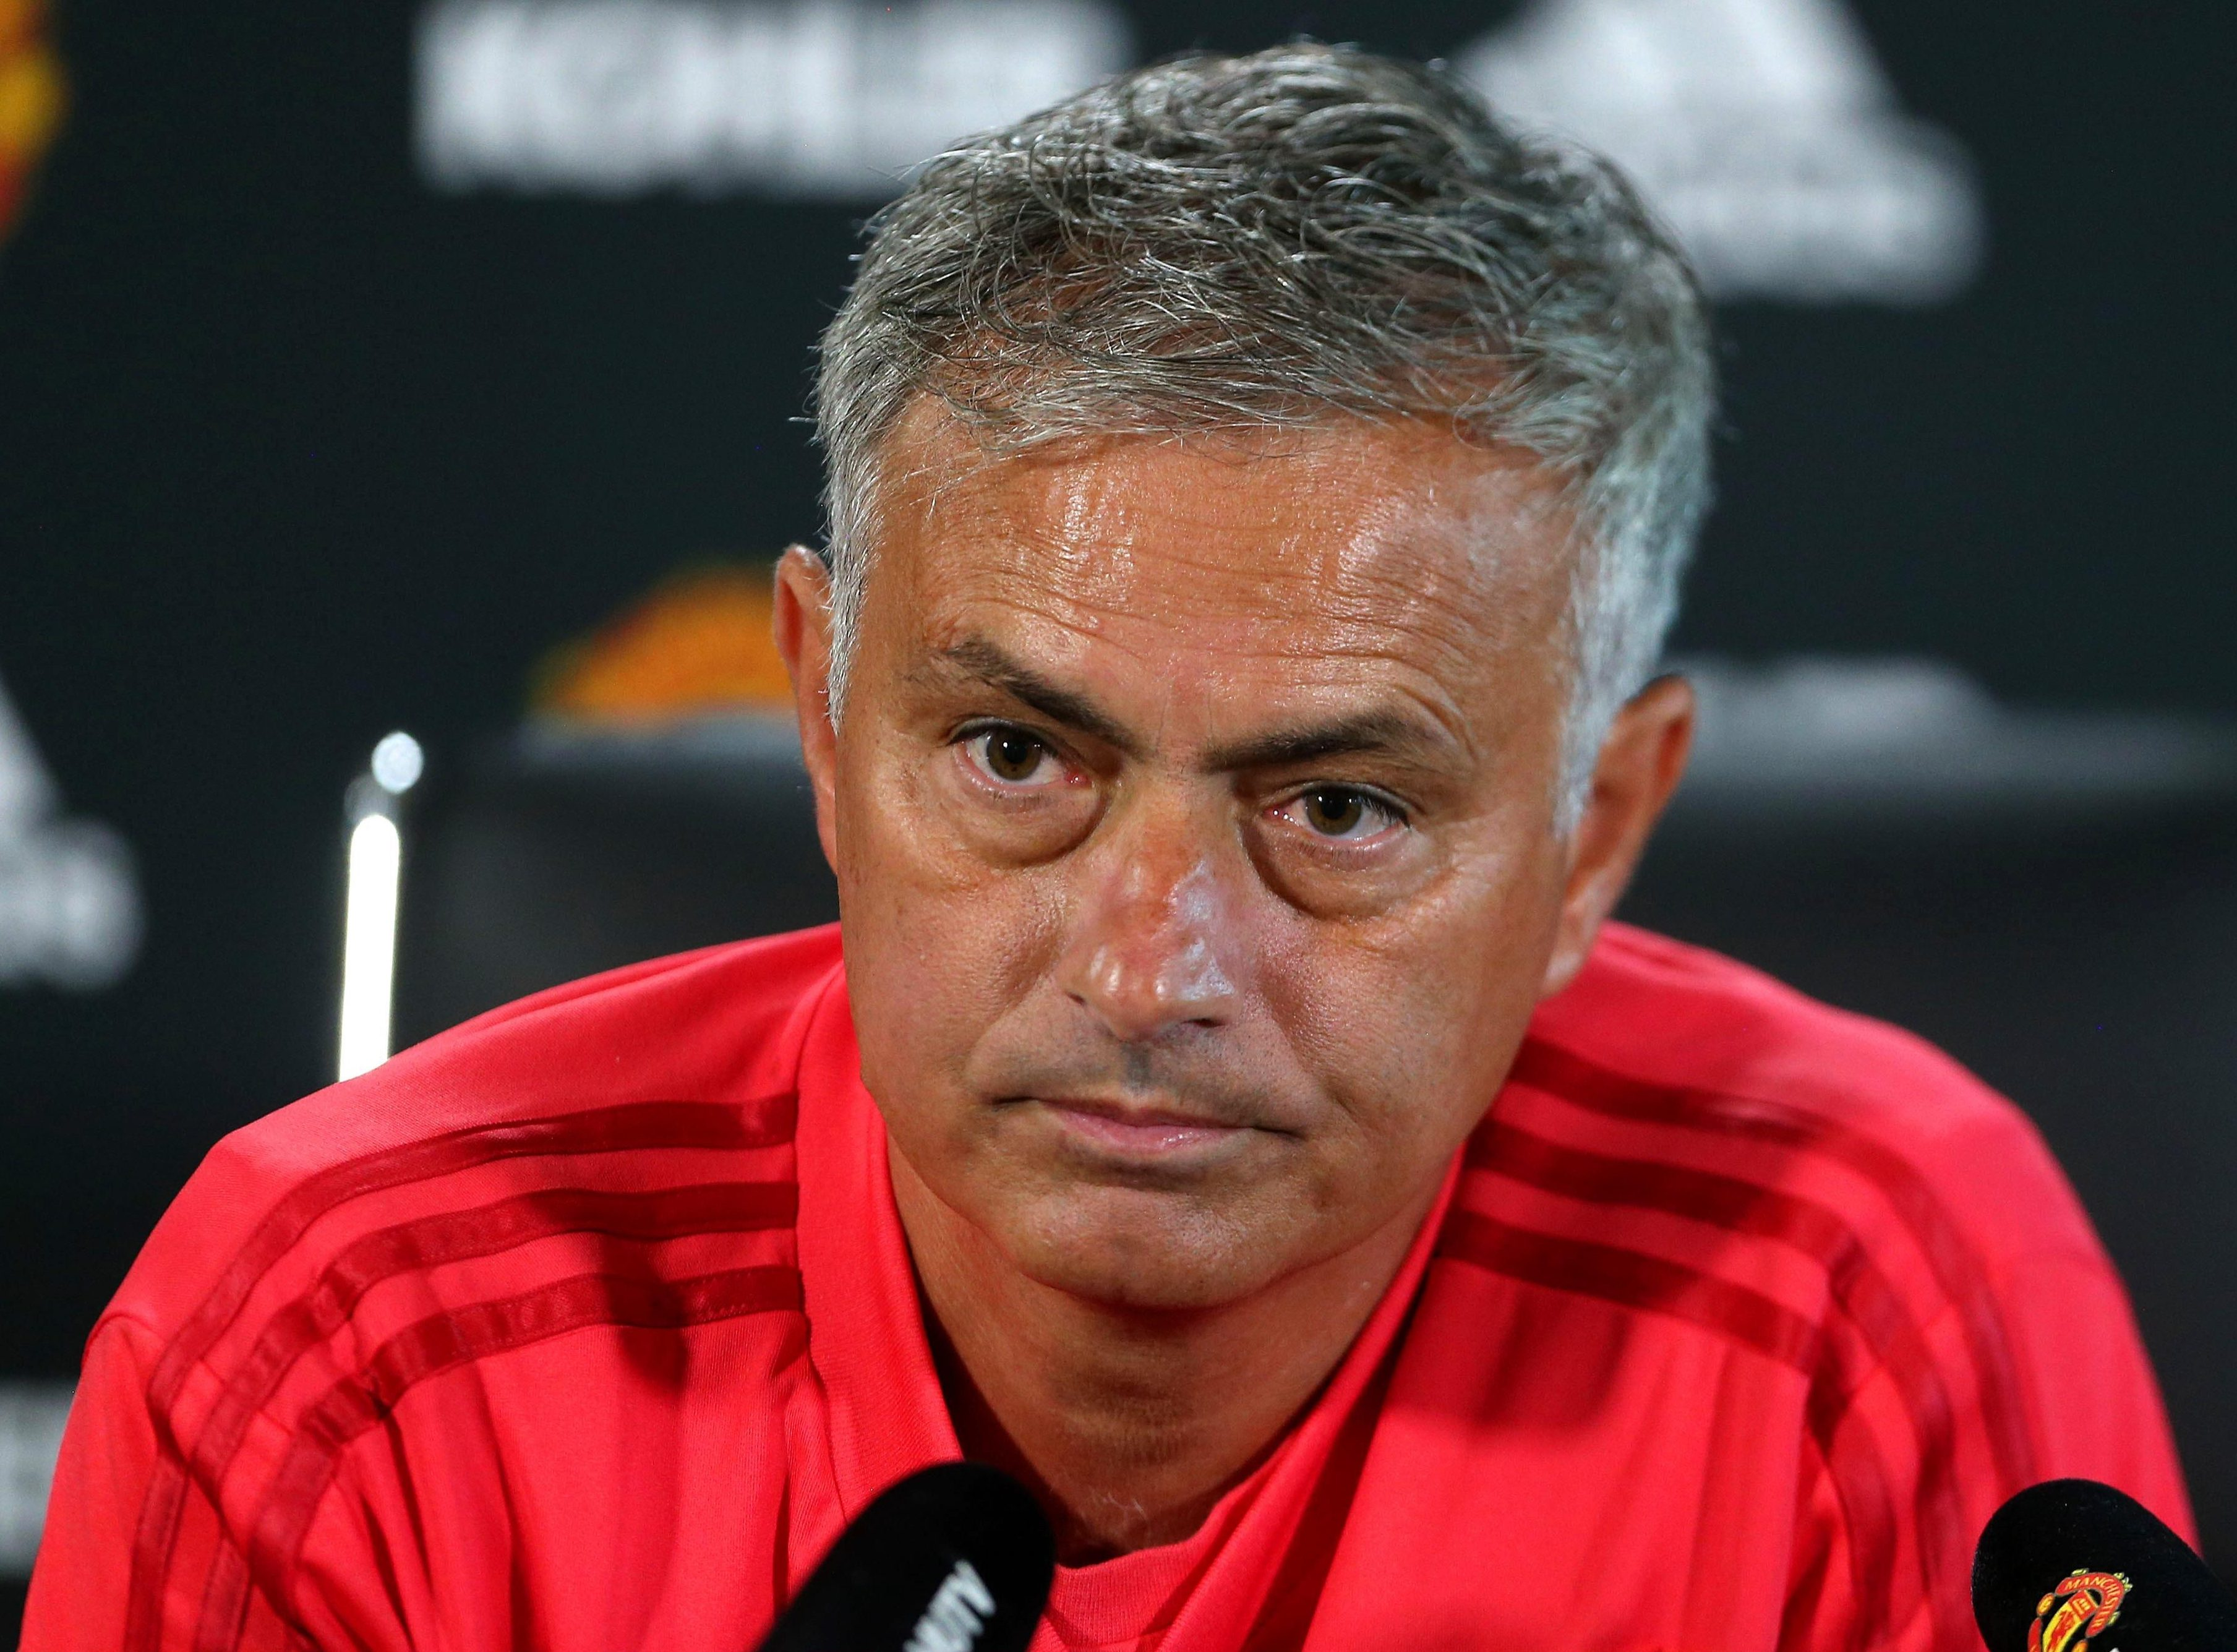 Jose Mourinho insists there is no trouble between him and Ed Woodward